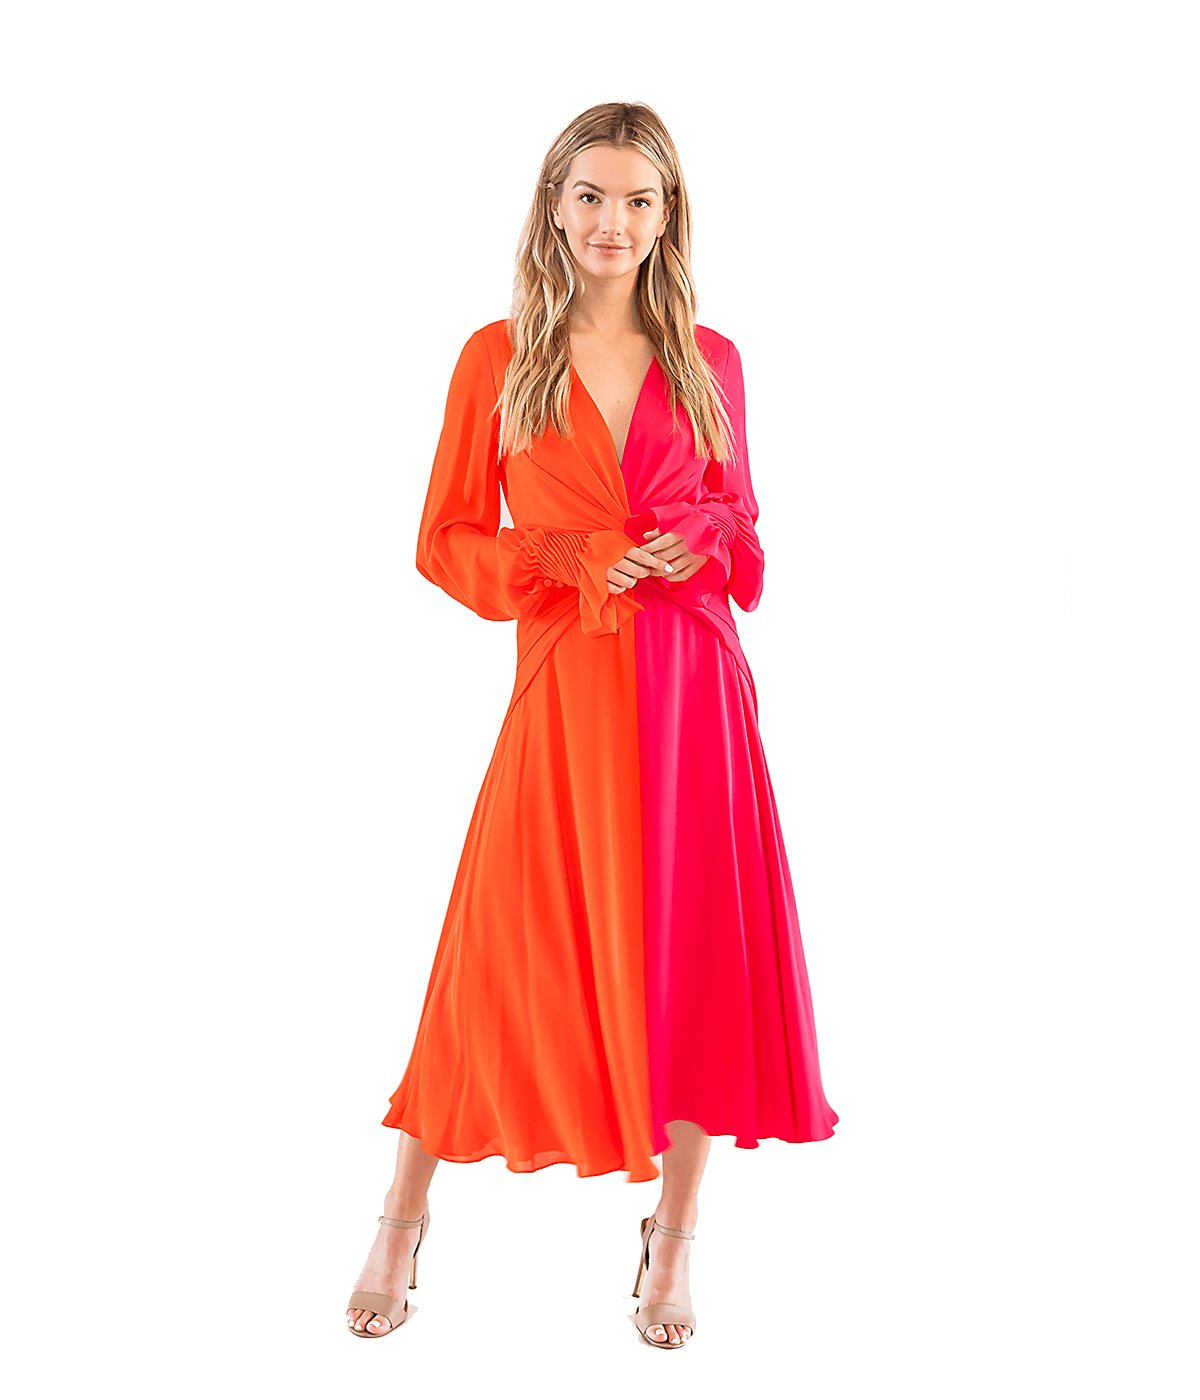 Two-Tone Knotted Silk Dress - Lady Jetset